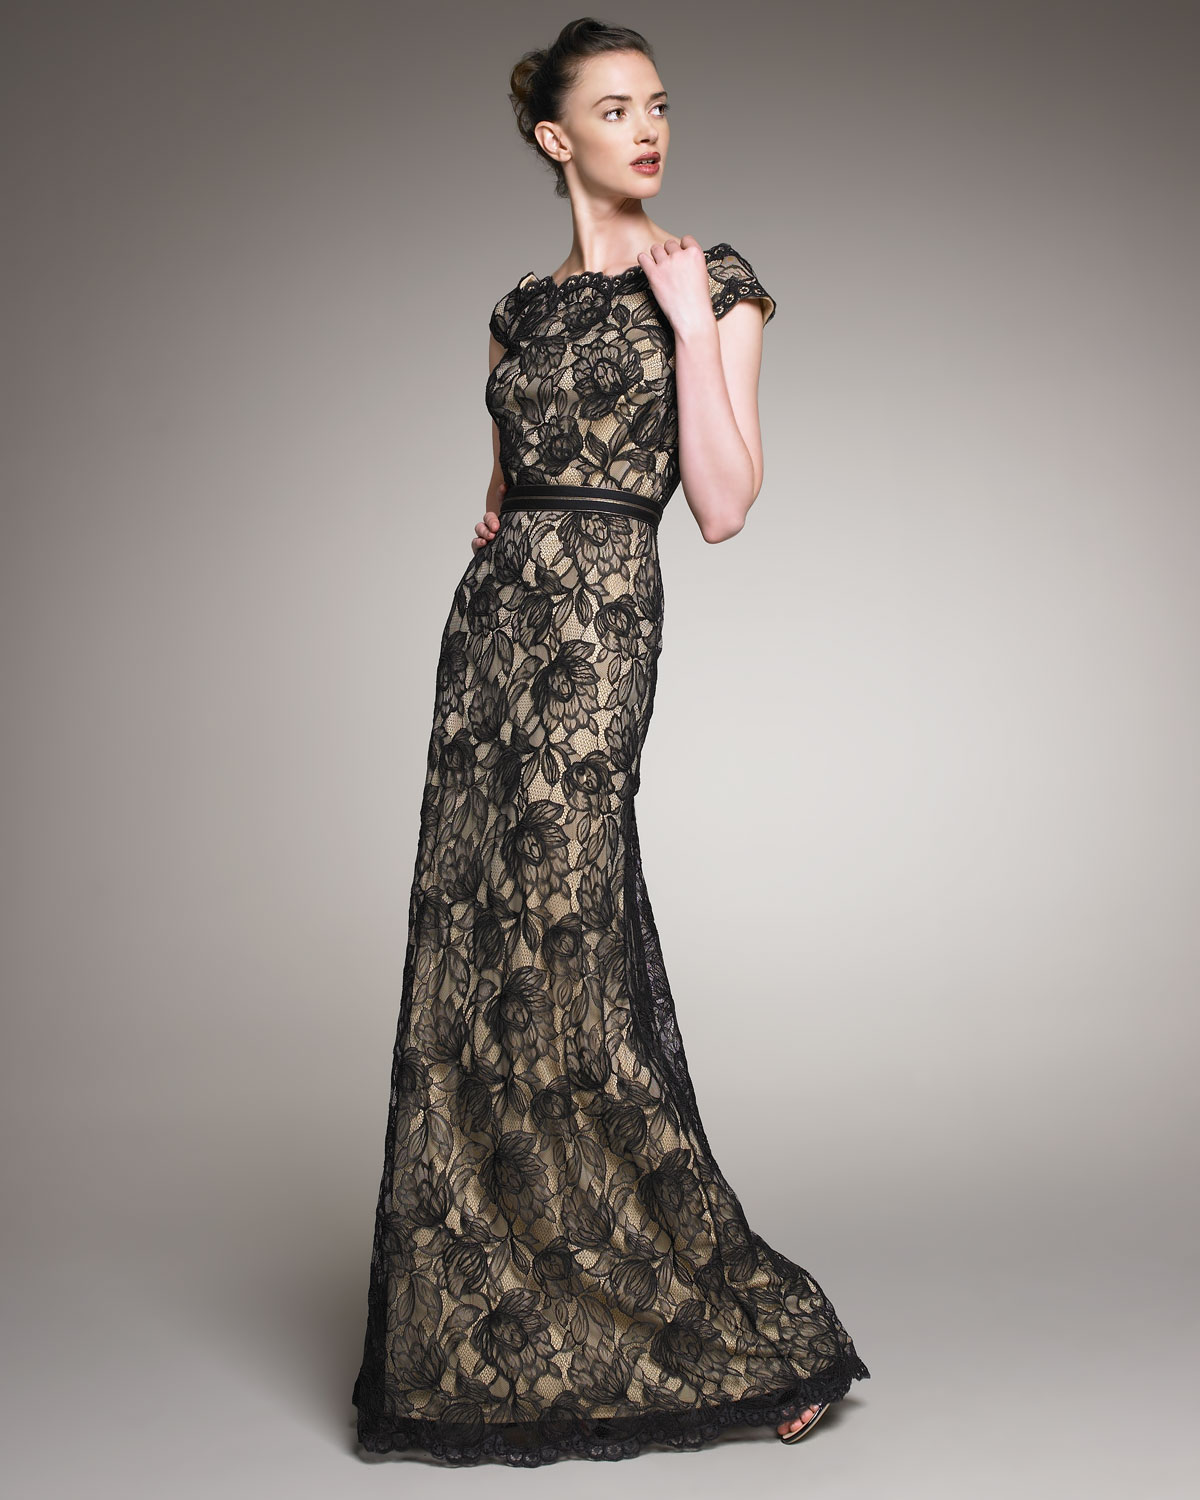 8940a3662 Tadashi Shoji Scalloped Lace Gown in Black - Lyst